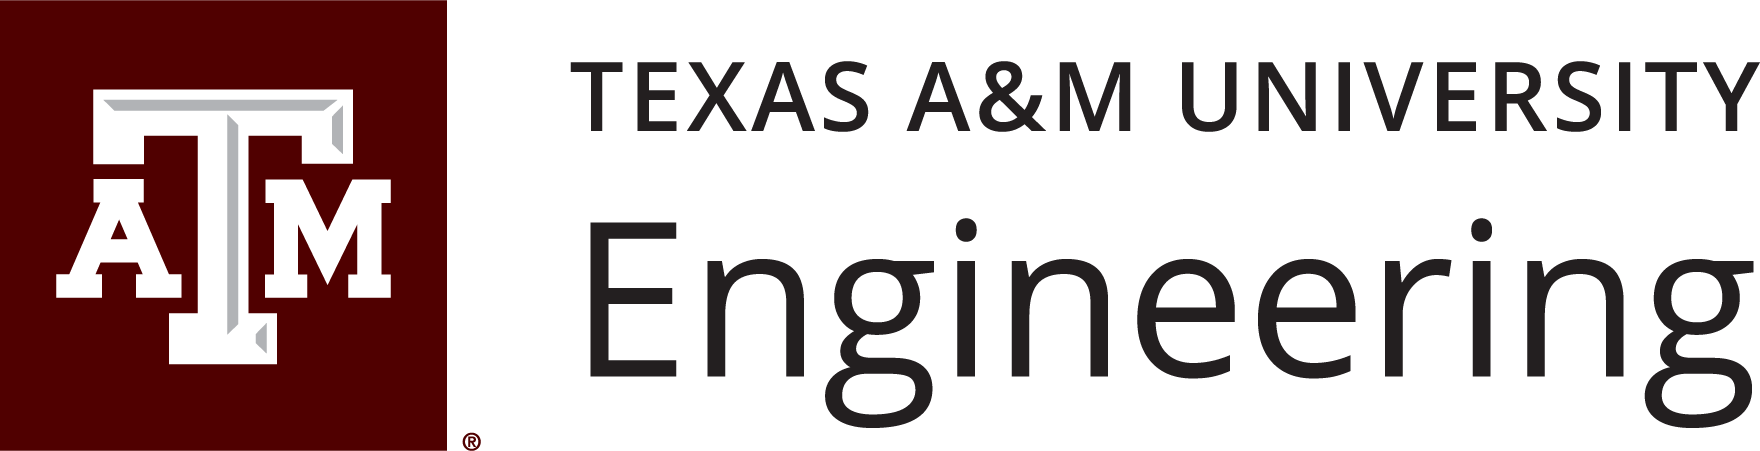 Texas A&M University College of Engineering Logo